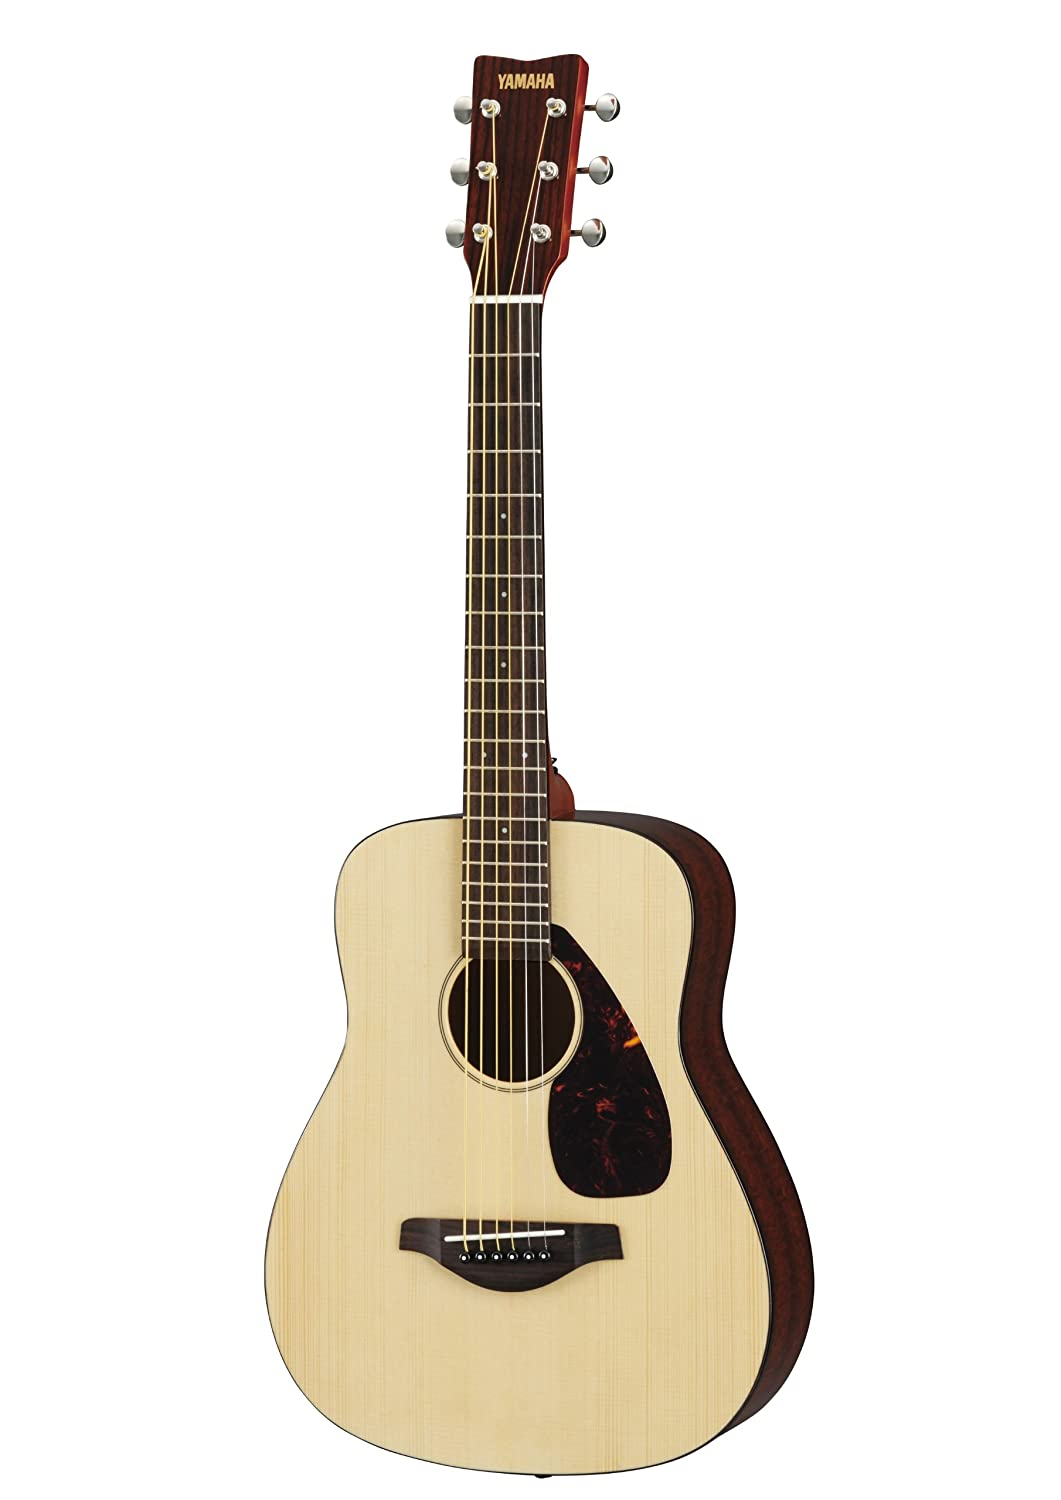 Yamaha JR2S Compact Acoustic Guitar